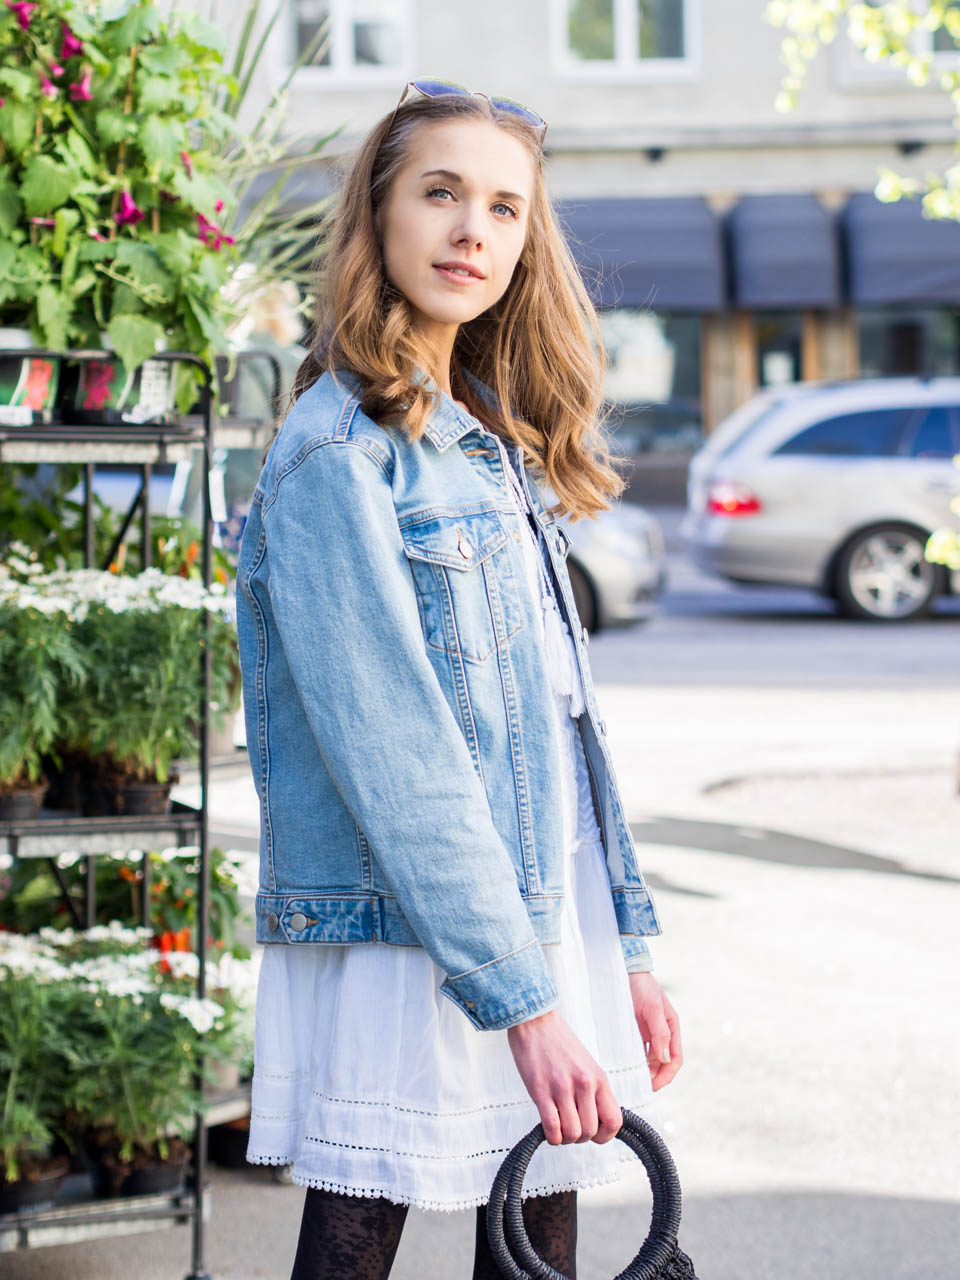 fashion-blogger-outfit-inspiration-early-summer-layering-dress-denim-jacket